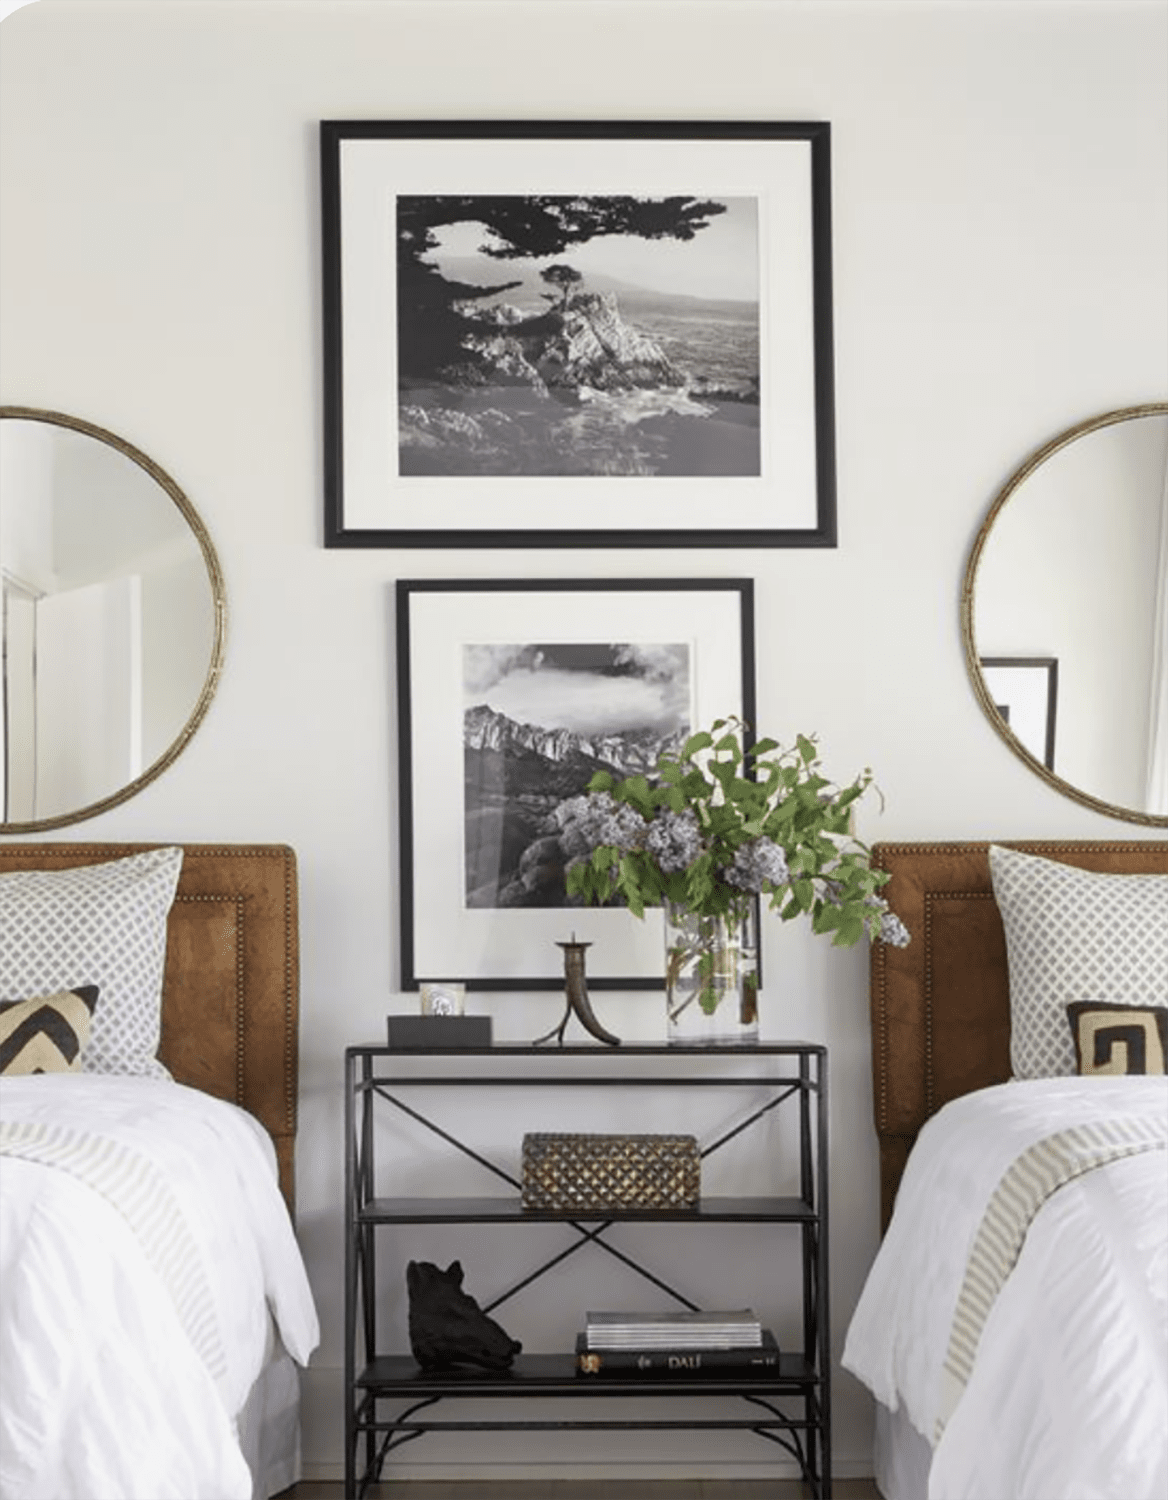 andrew brown designed bedroom with matching mirrors